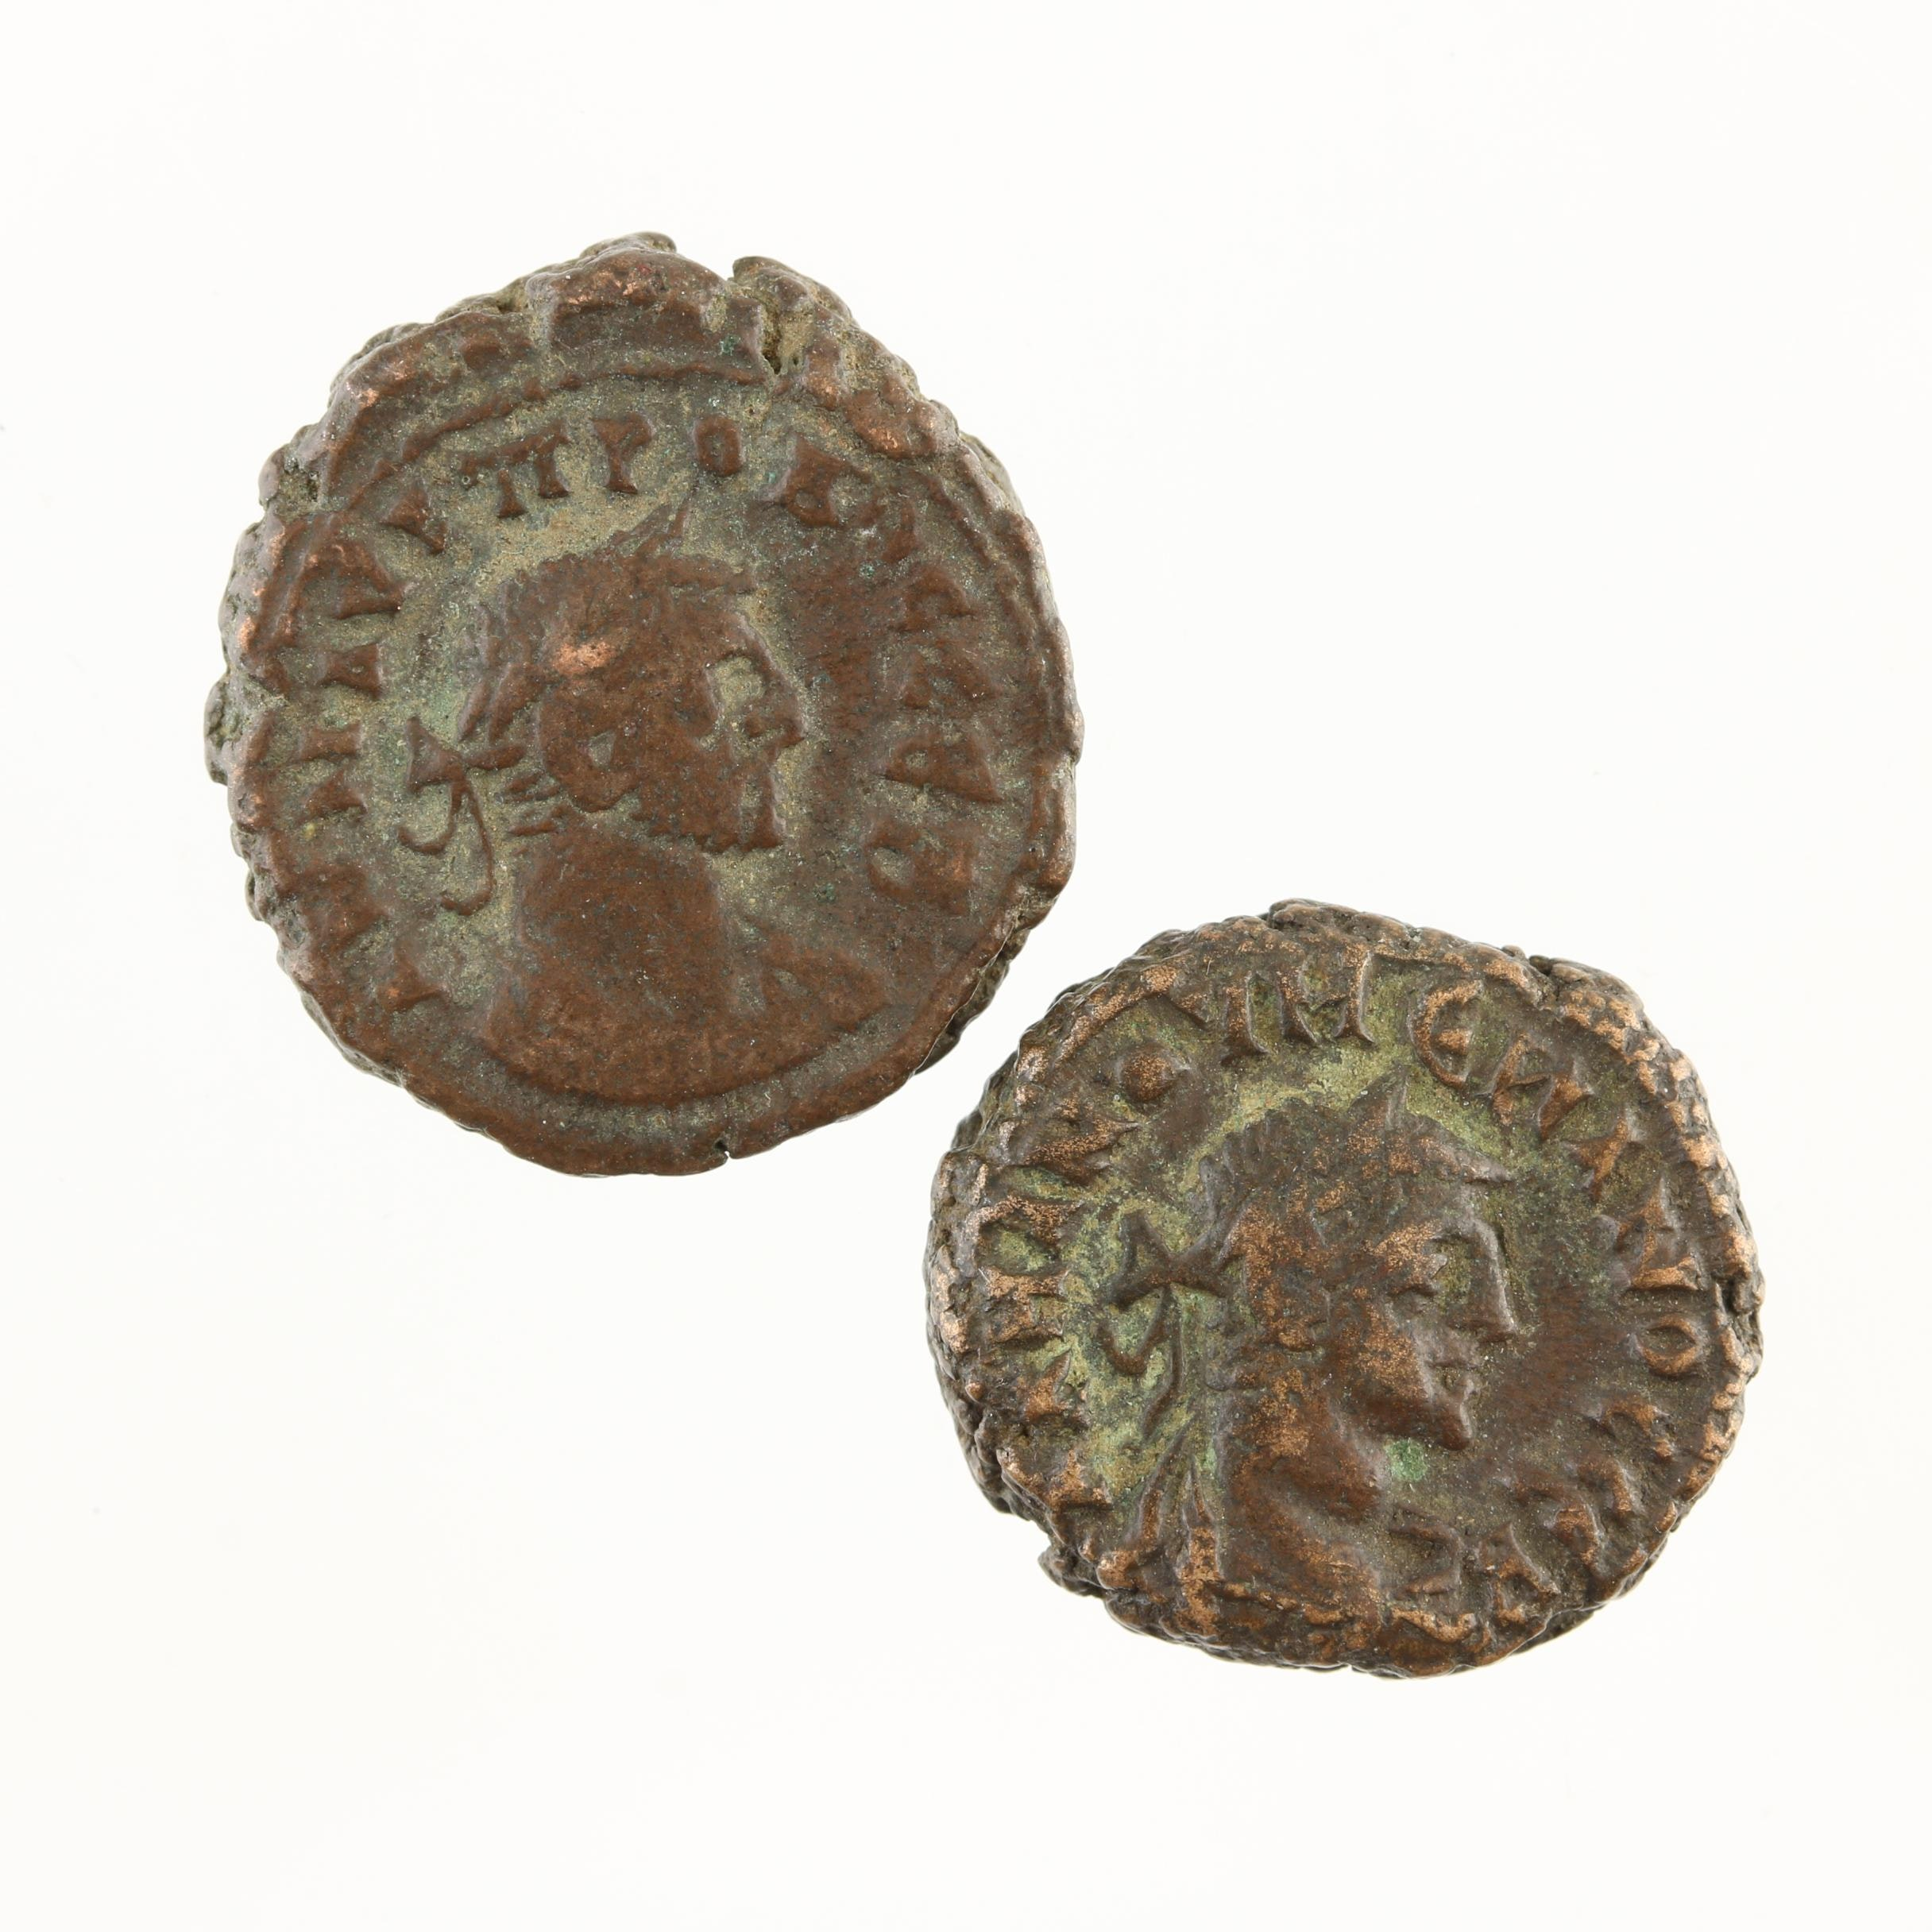 Two Ancient Roman Imperial AE3 Bronze Coins